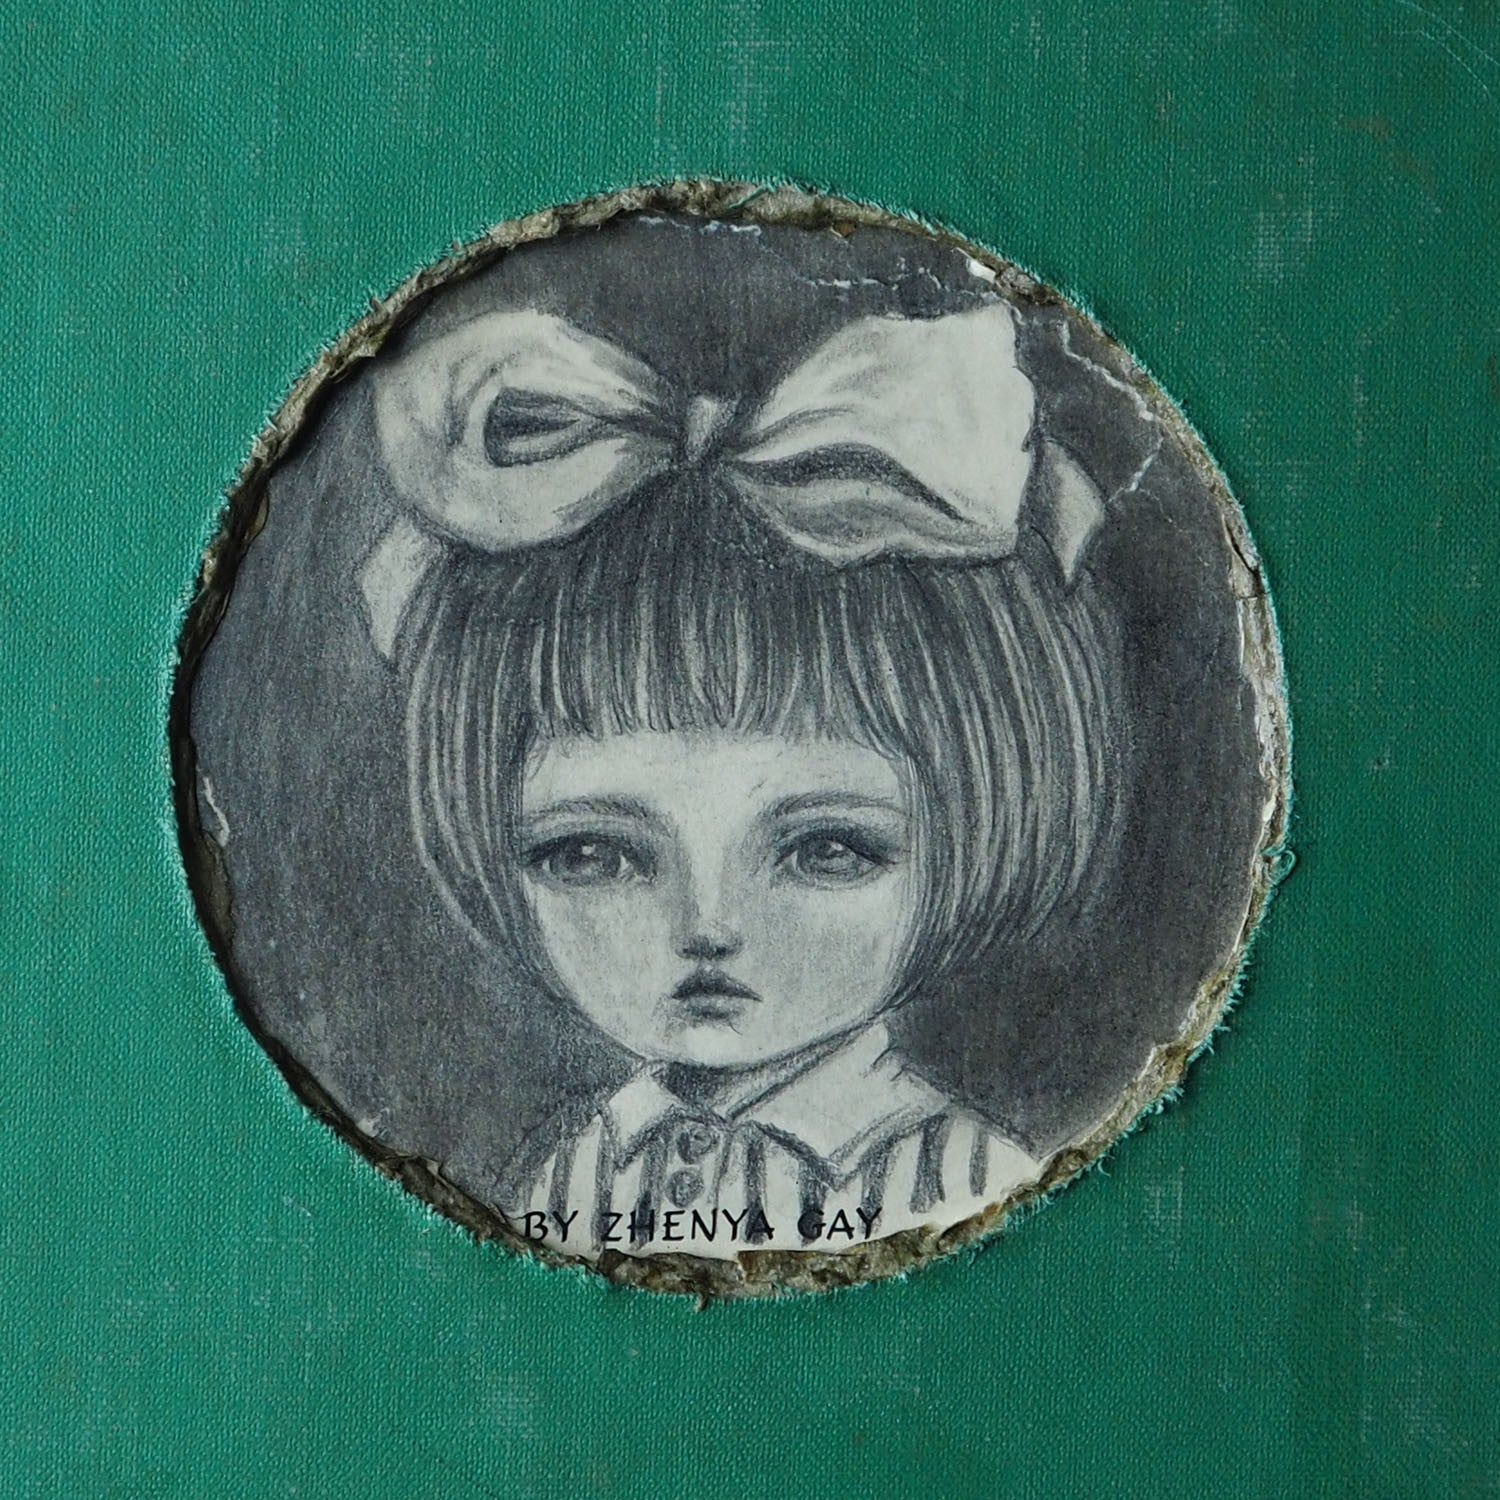 A beautiful mixed media altered book by Danita Art. One of her astonishing girls adorns the cover in a pencil and graphite drawing on the hard cover of an antique library book.